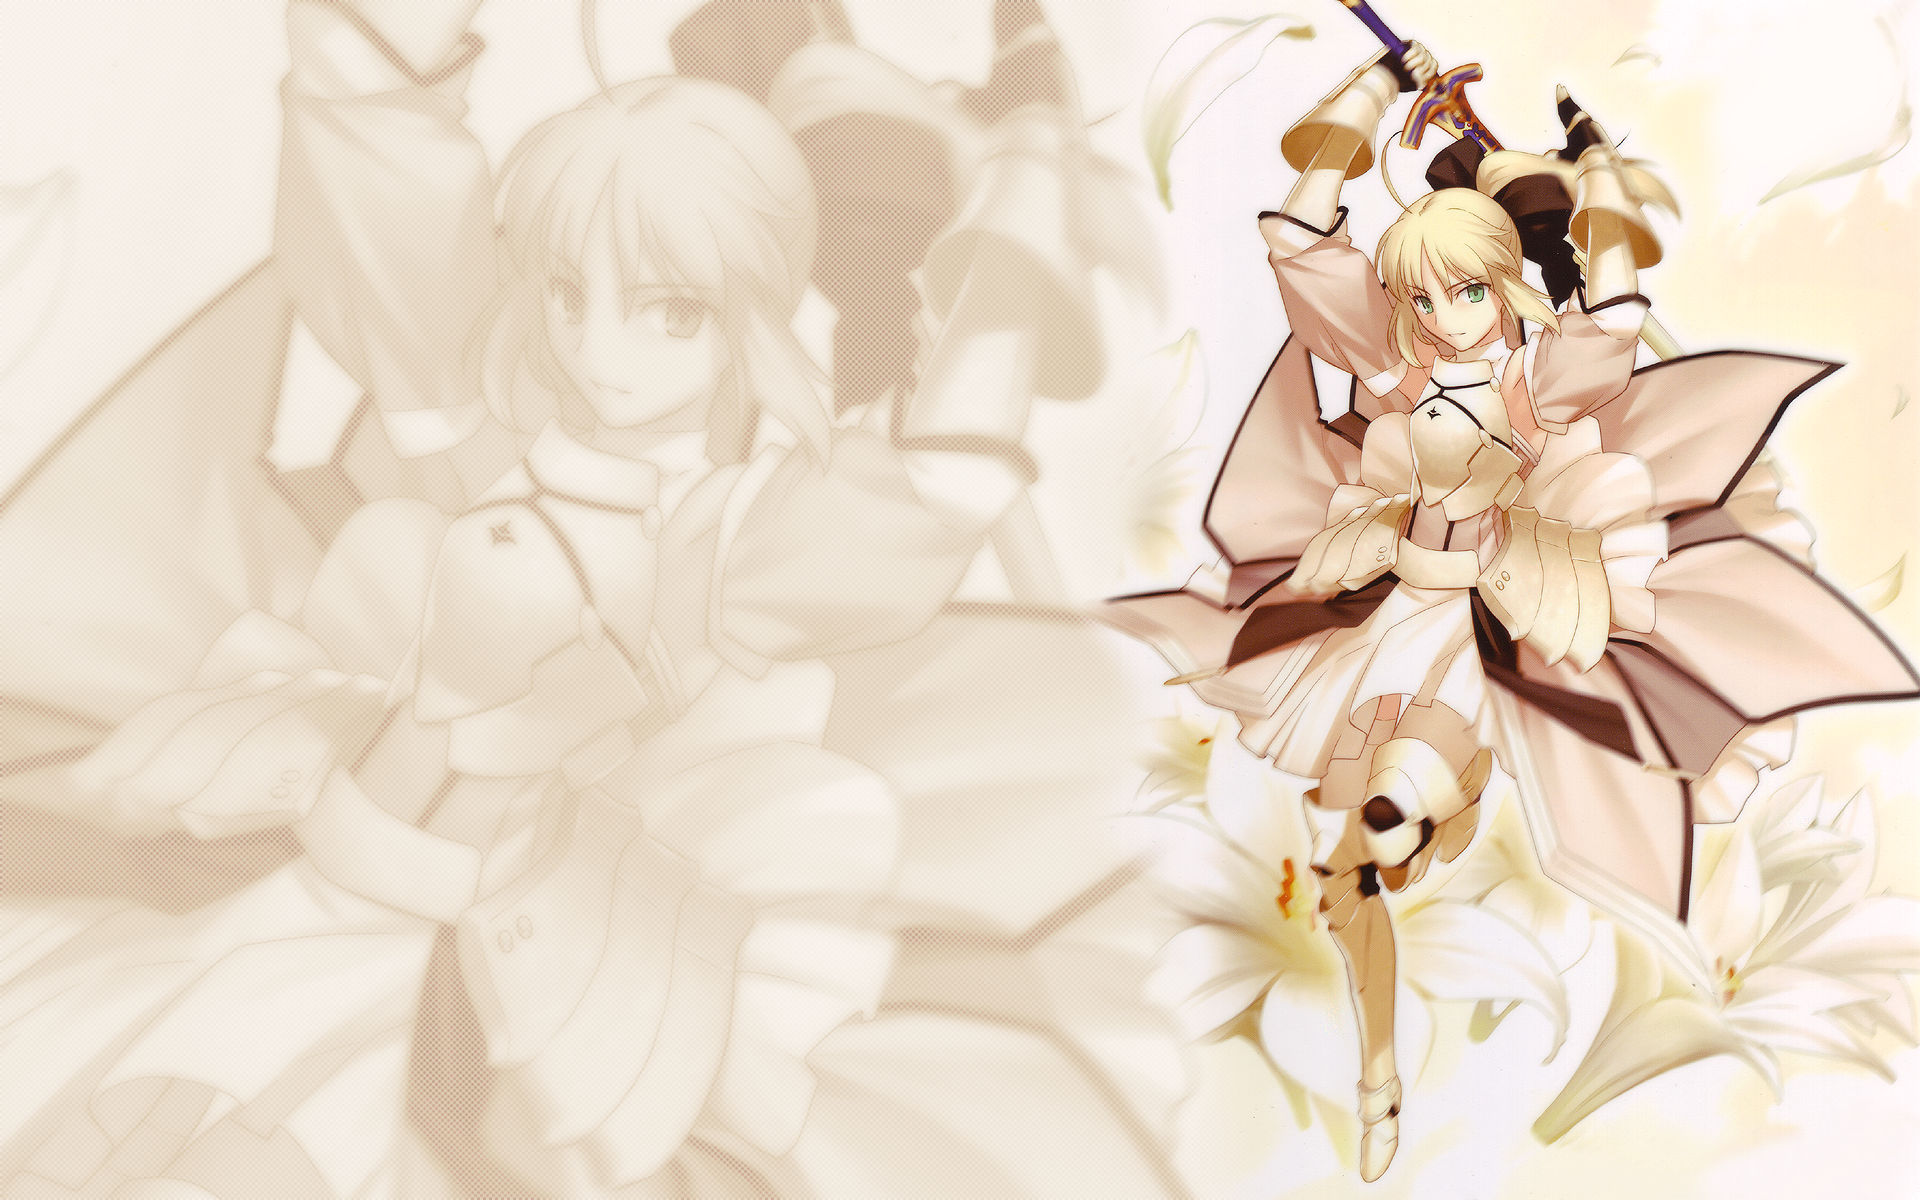 Anime - Fate/Stay Night  - Saber Lily Wallpaper